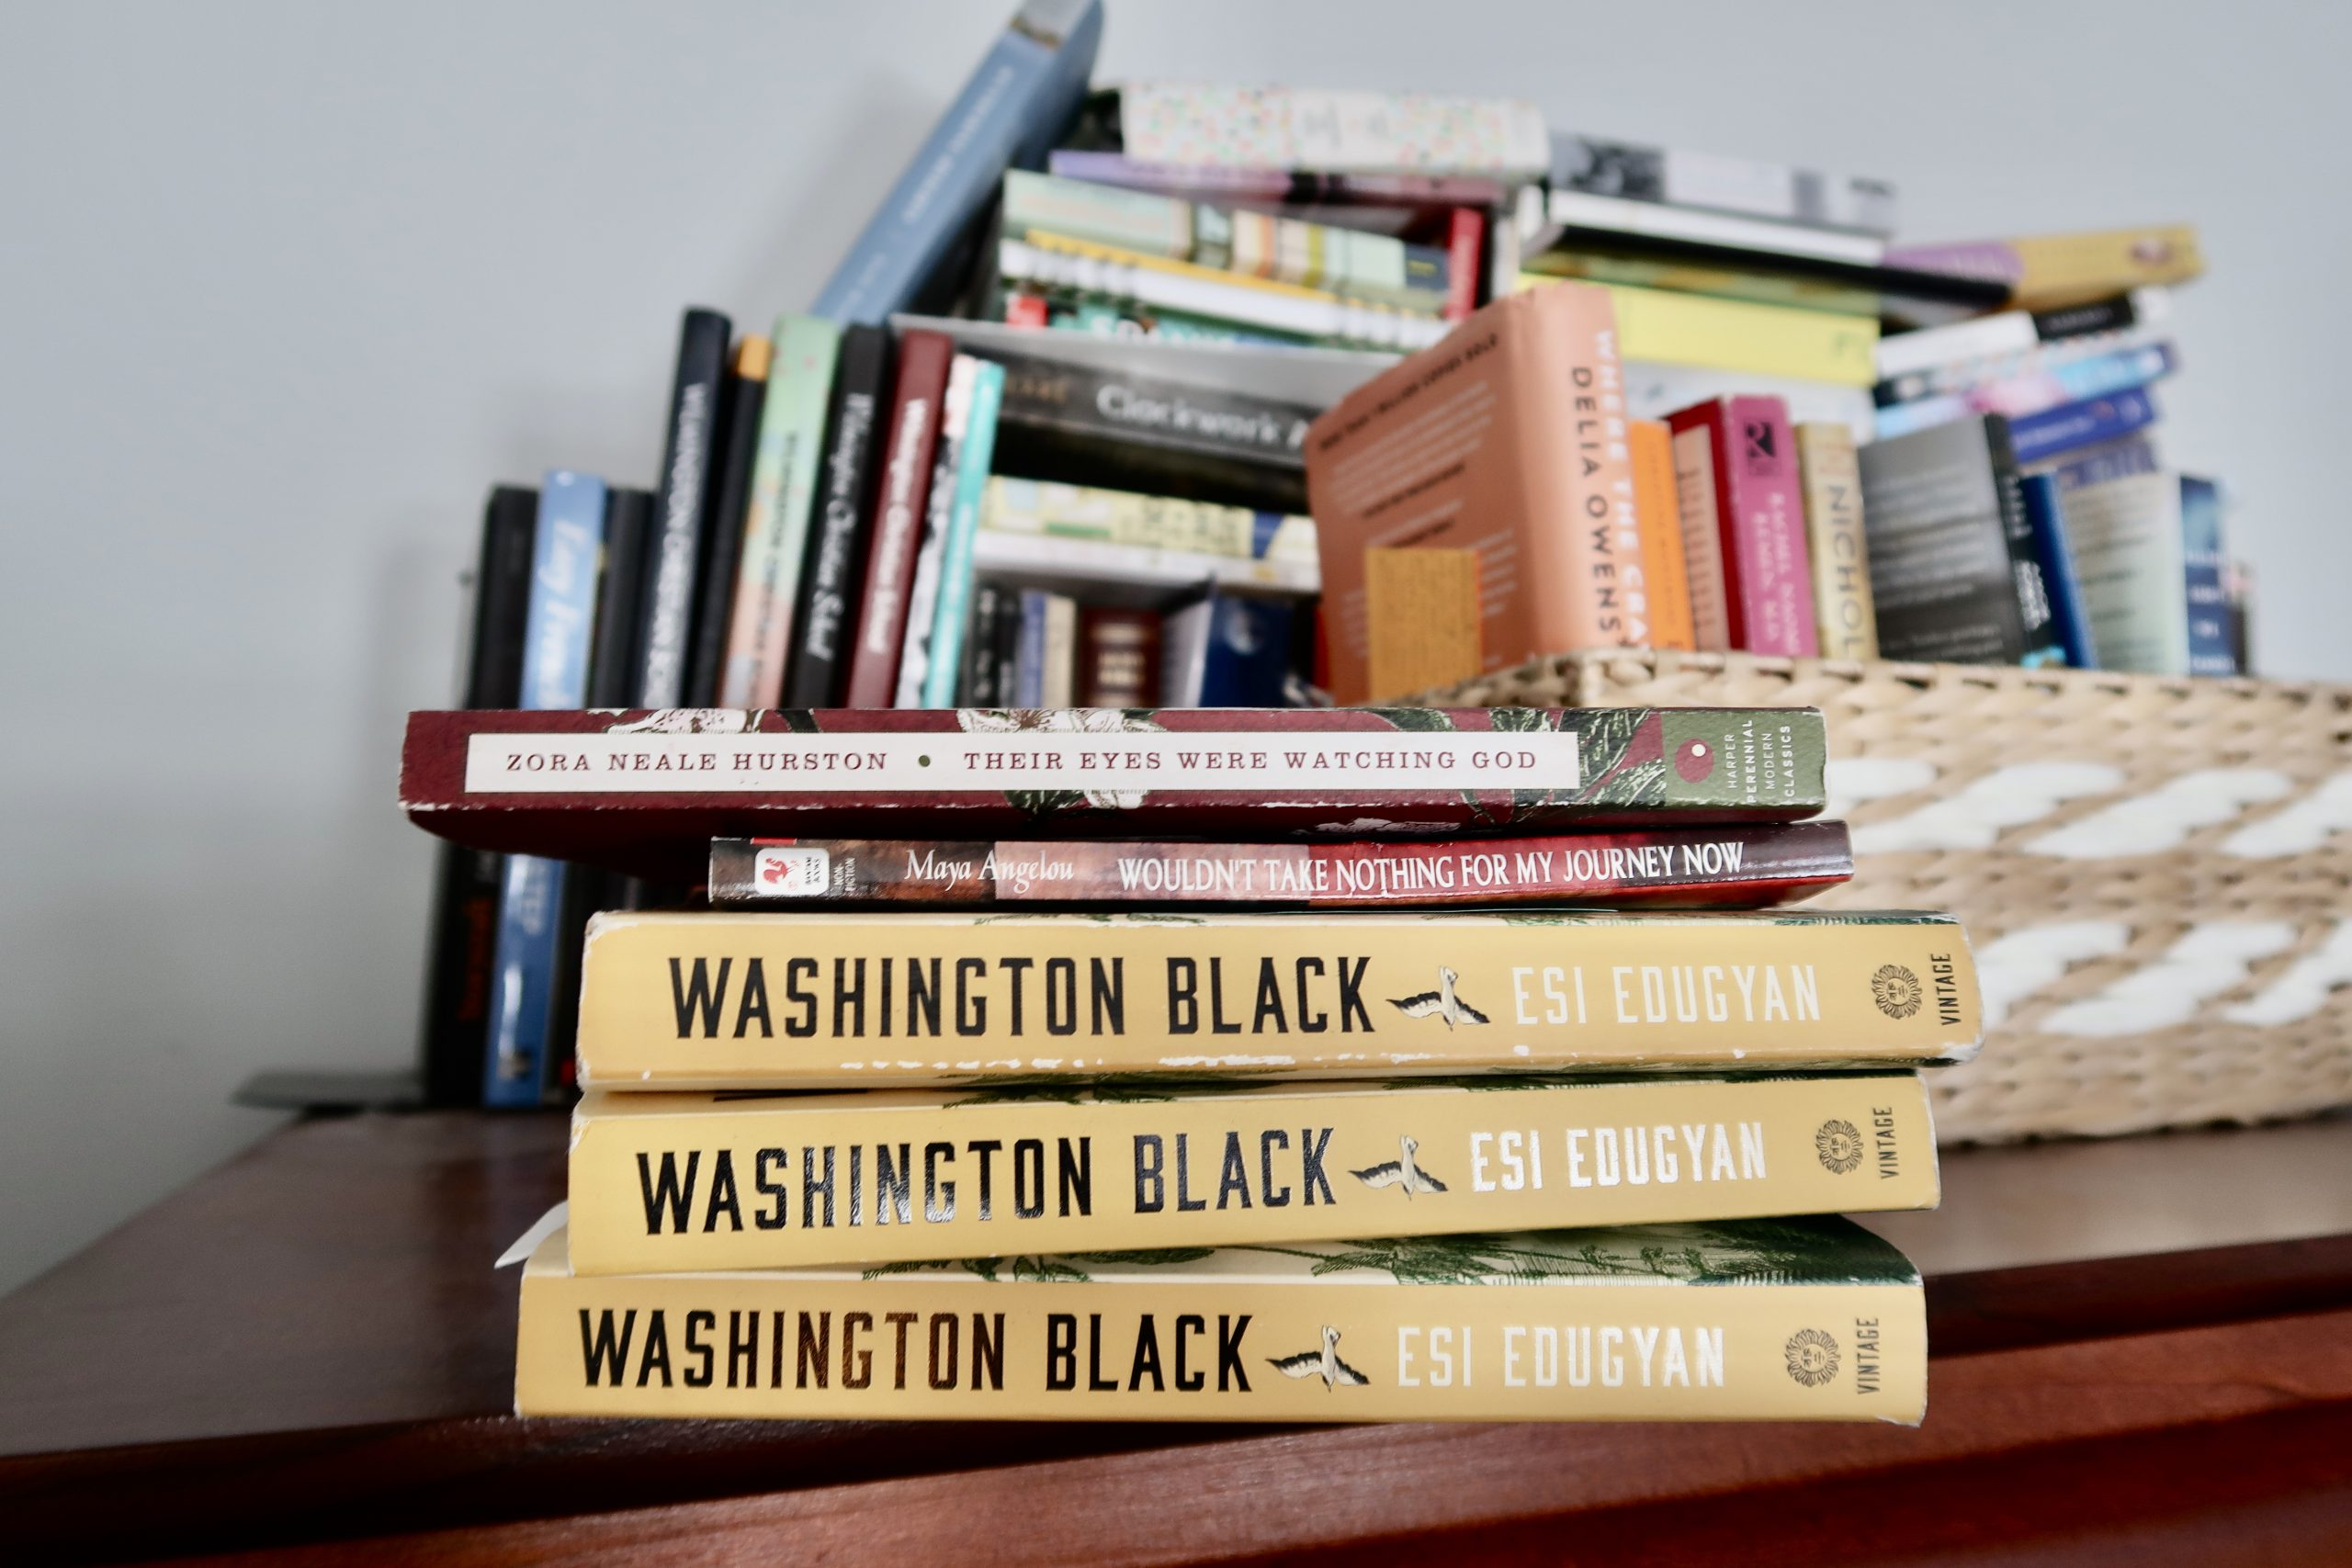 My Favorite Books by Black Authors - Georgetown University